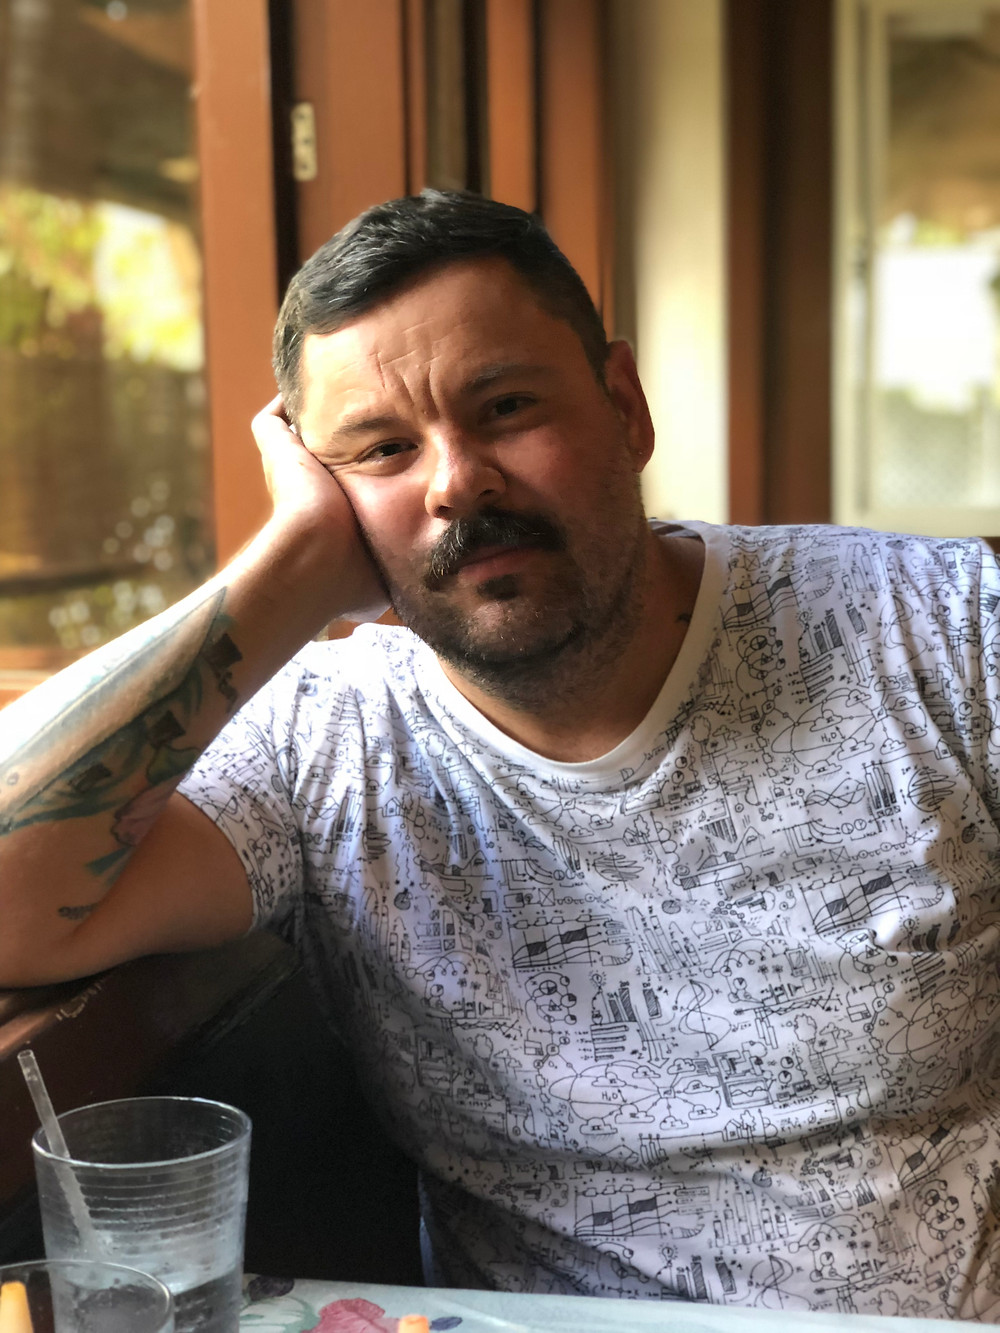 Gustavo Hernandez, a tattooed man with a mustache wears a white t-shirt while sitting at a table. He is leaning with his arm bent on a windowsill and he is resting his face on his hand.